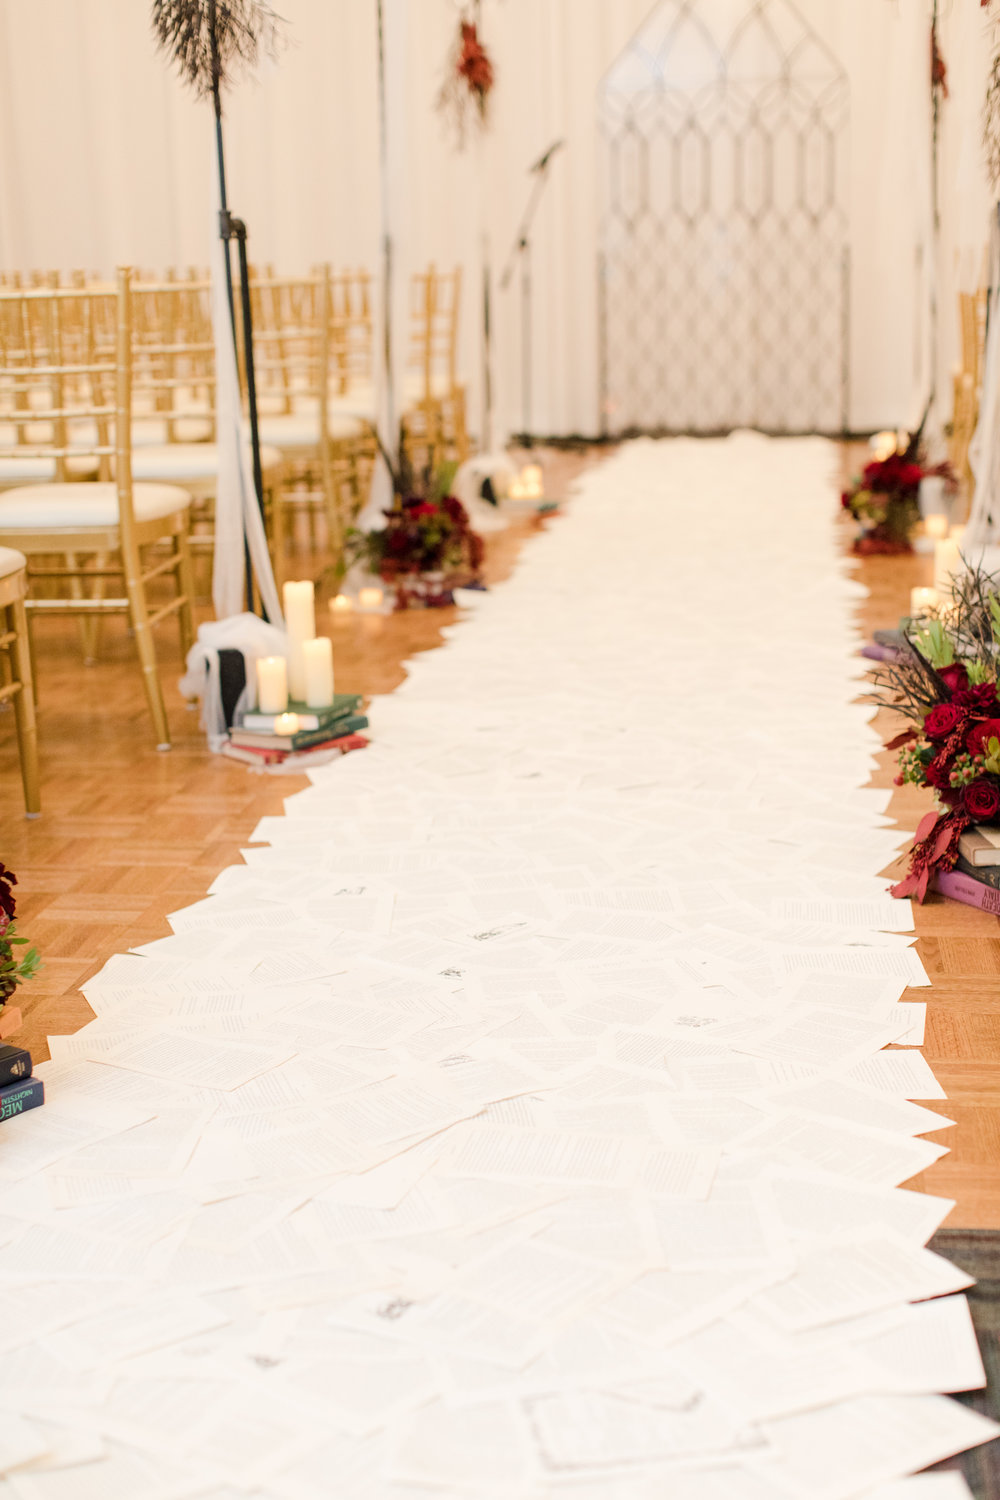 Book page aisle runner for library inspired wedding at Buona Sera Palazzo